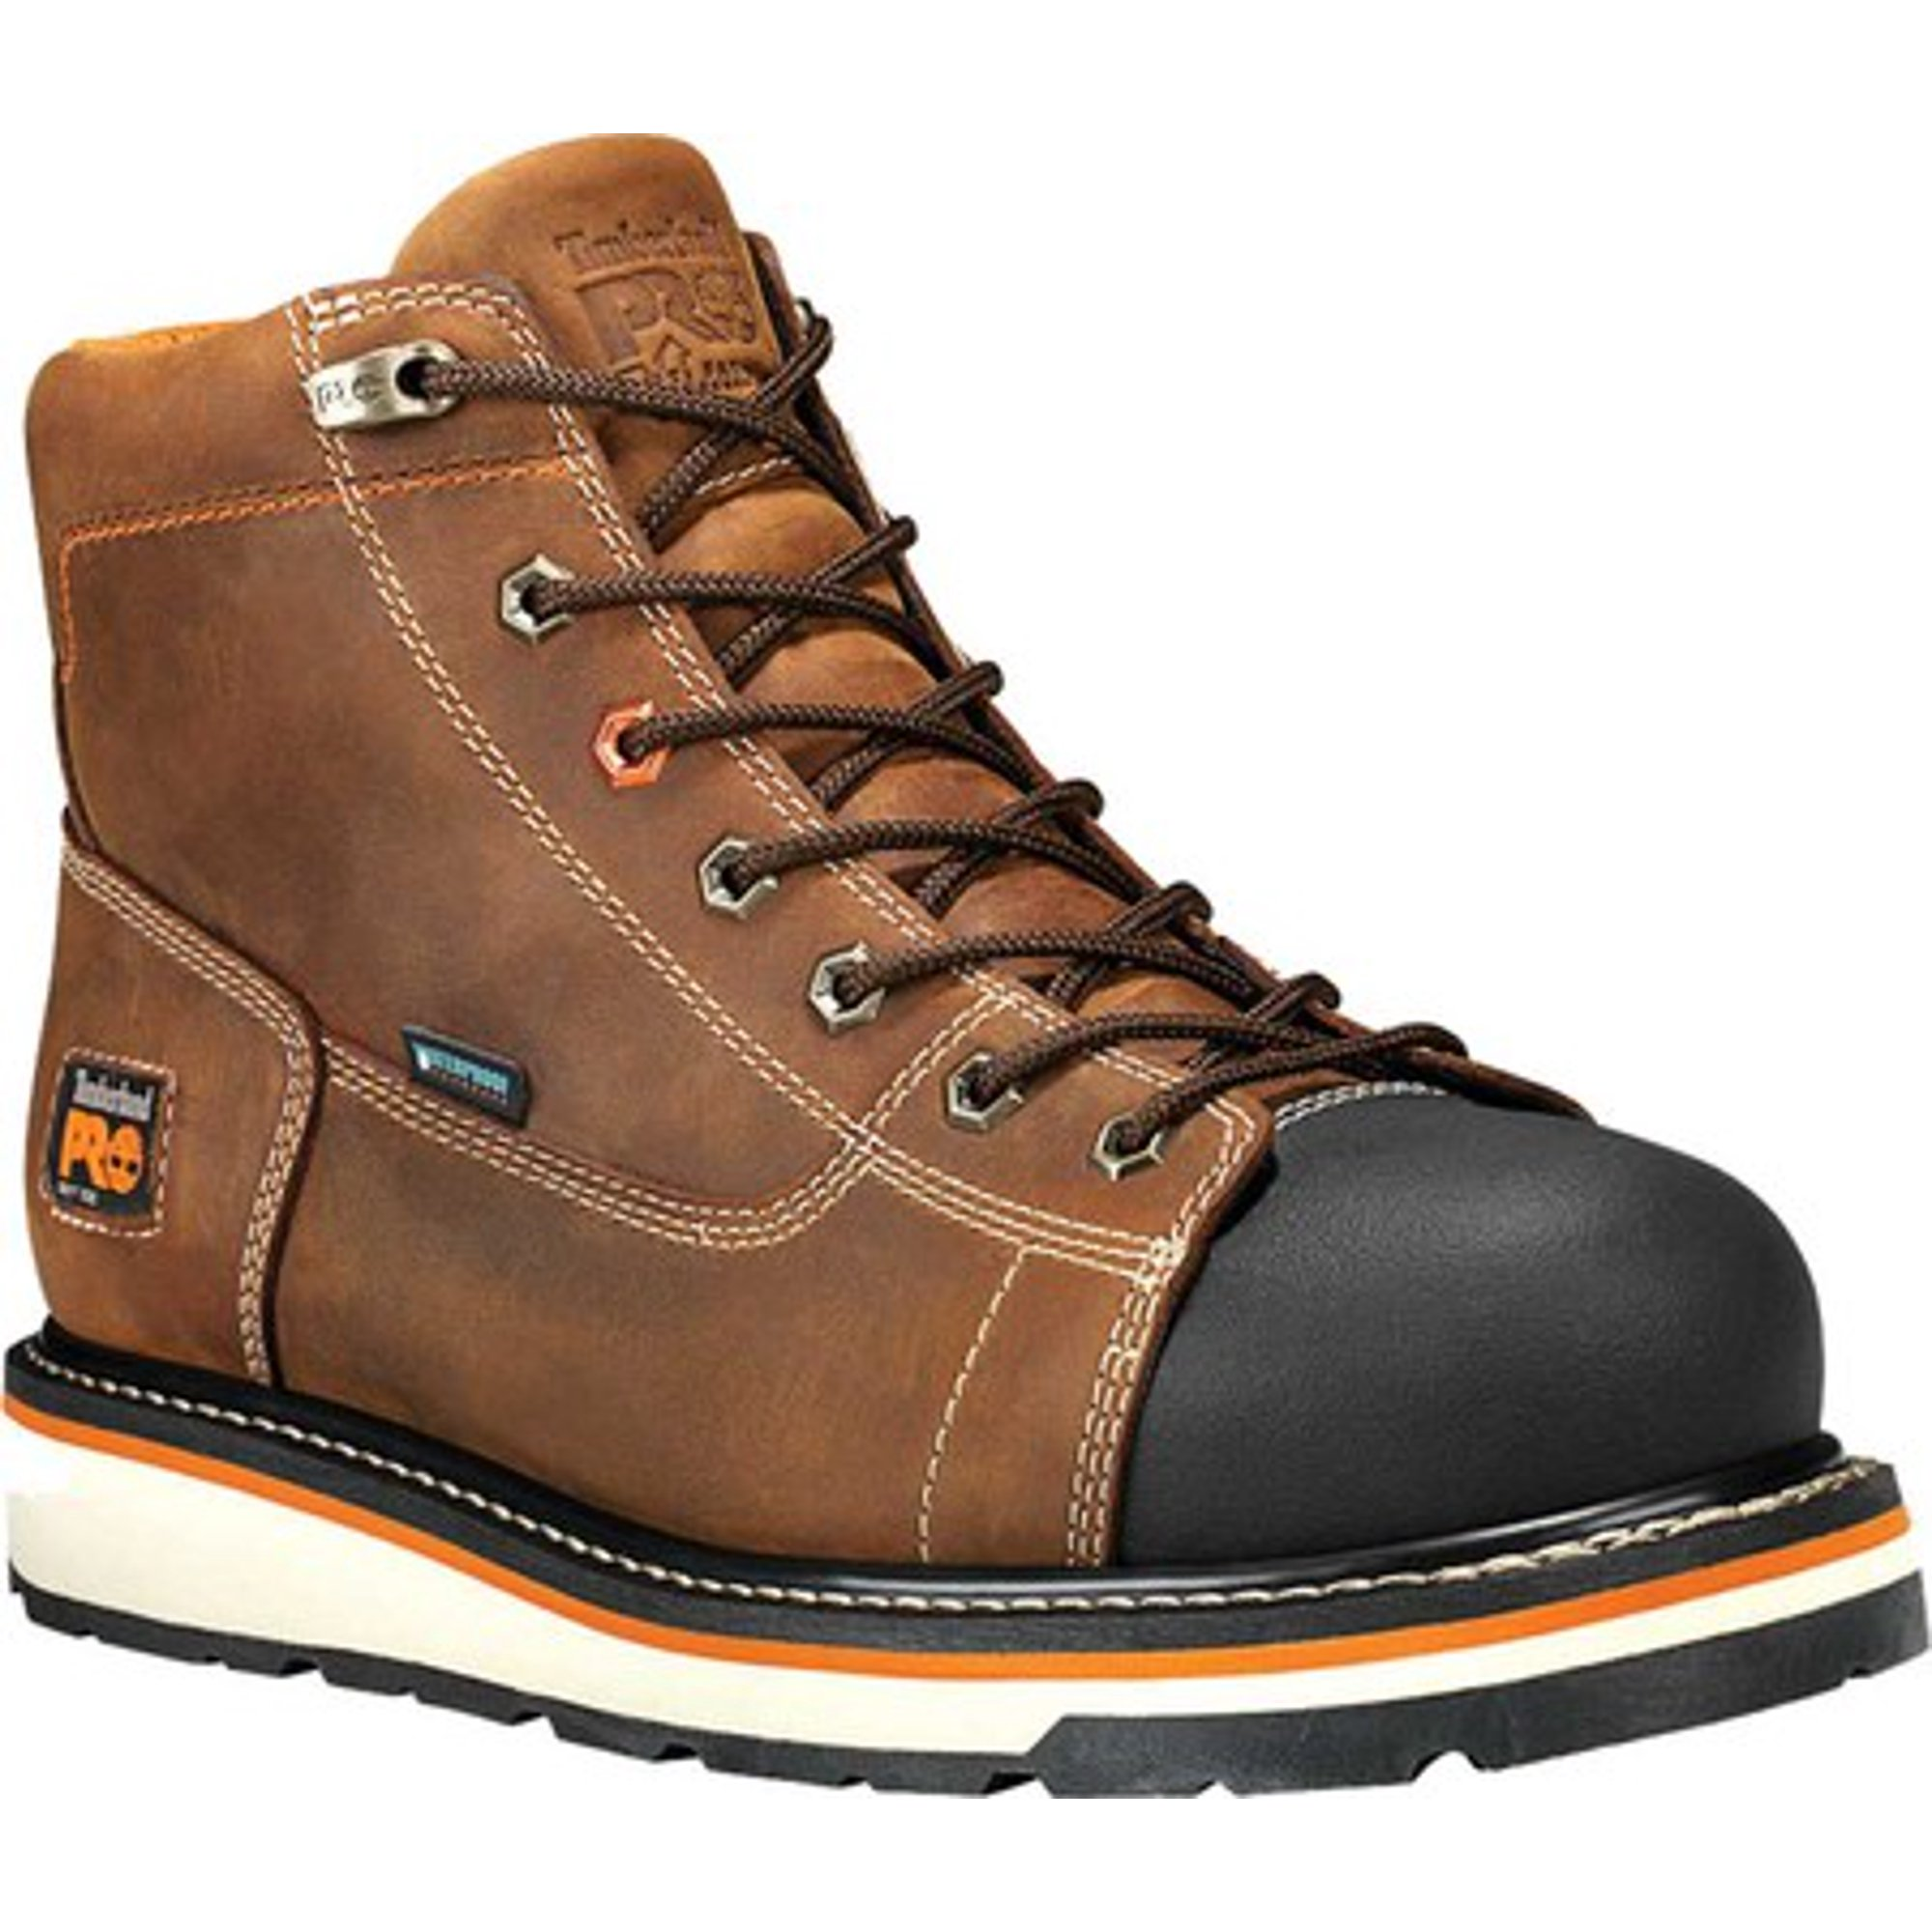 46e6f299684 Buy Timberland PRO Men's Gridworks 6